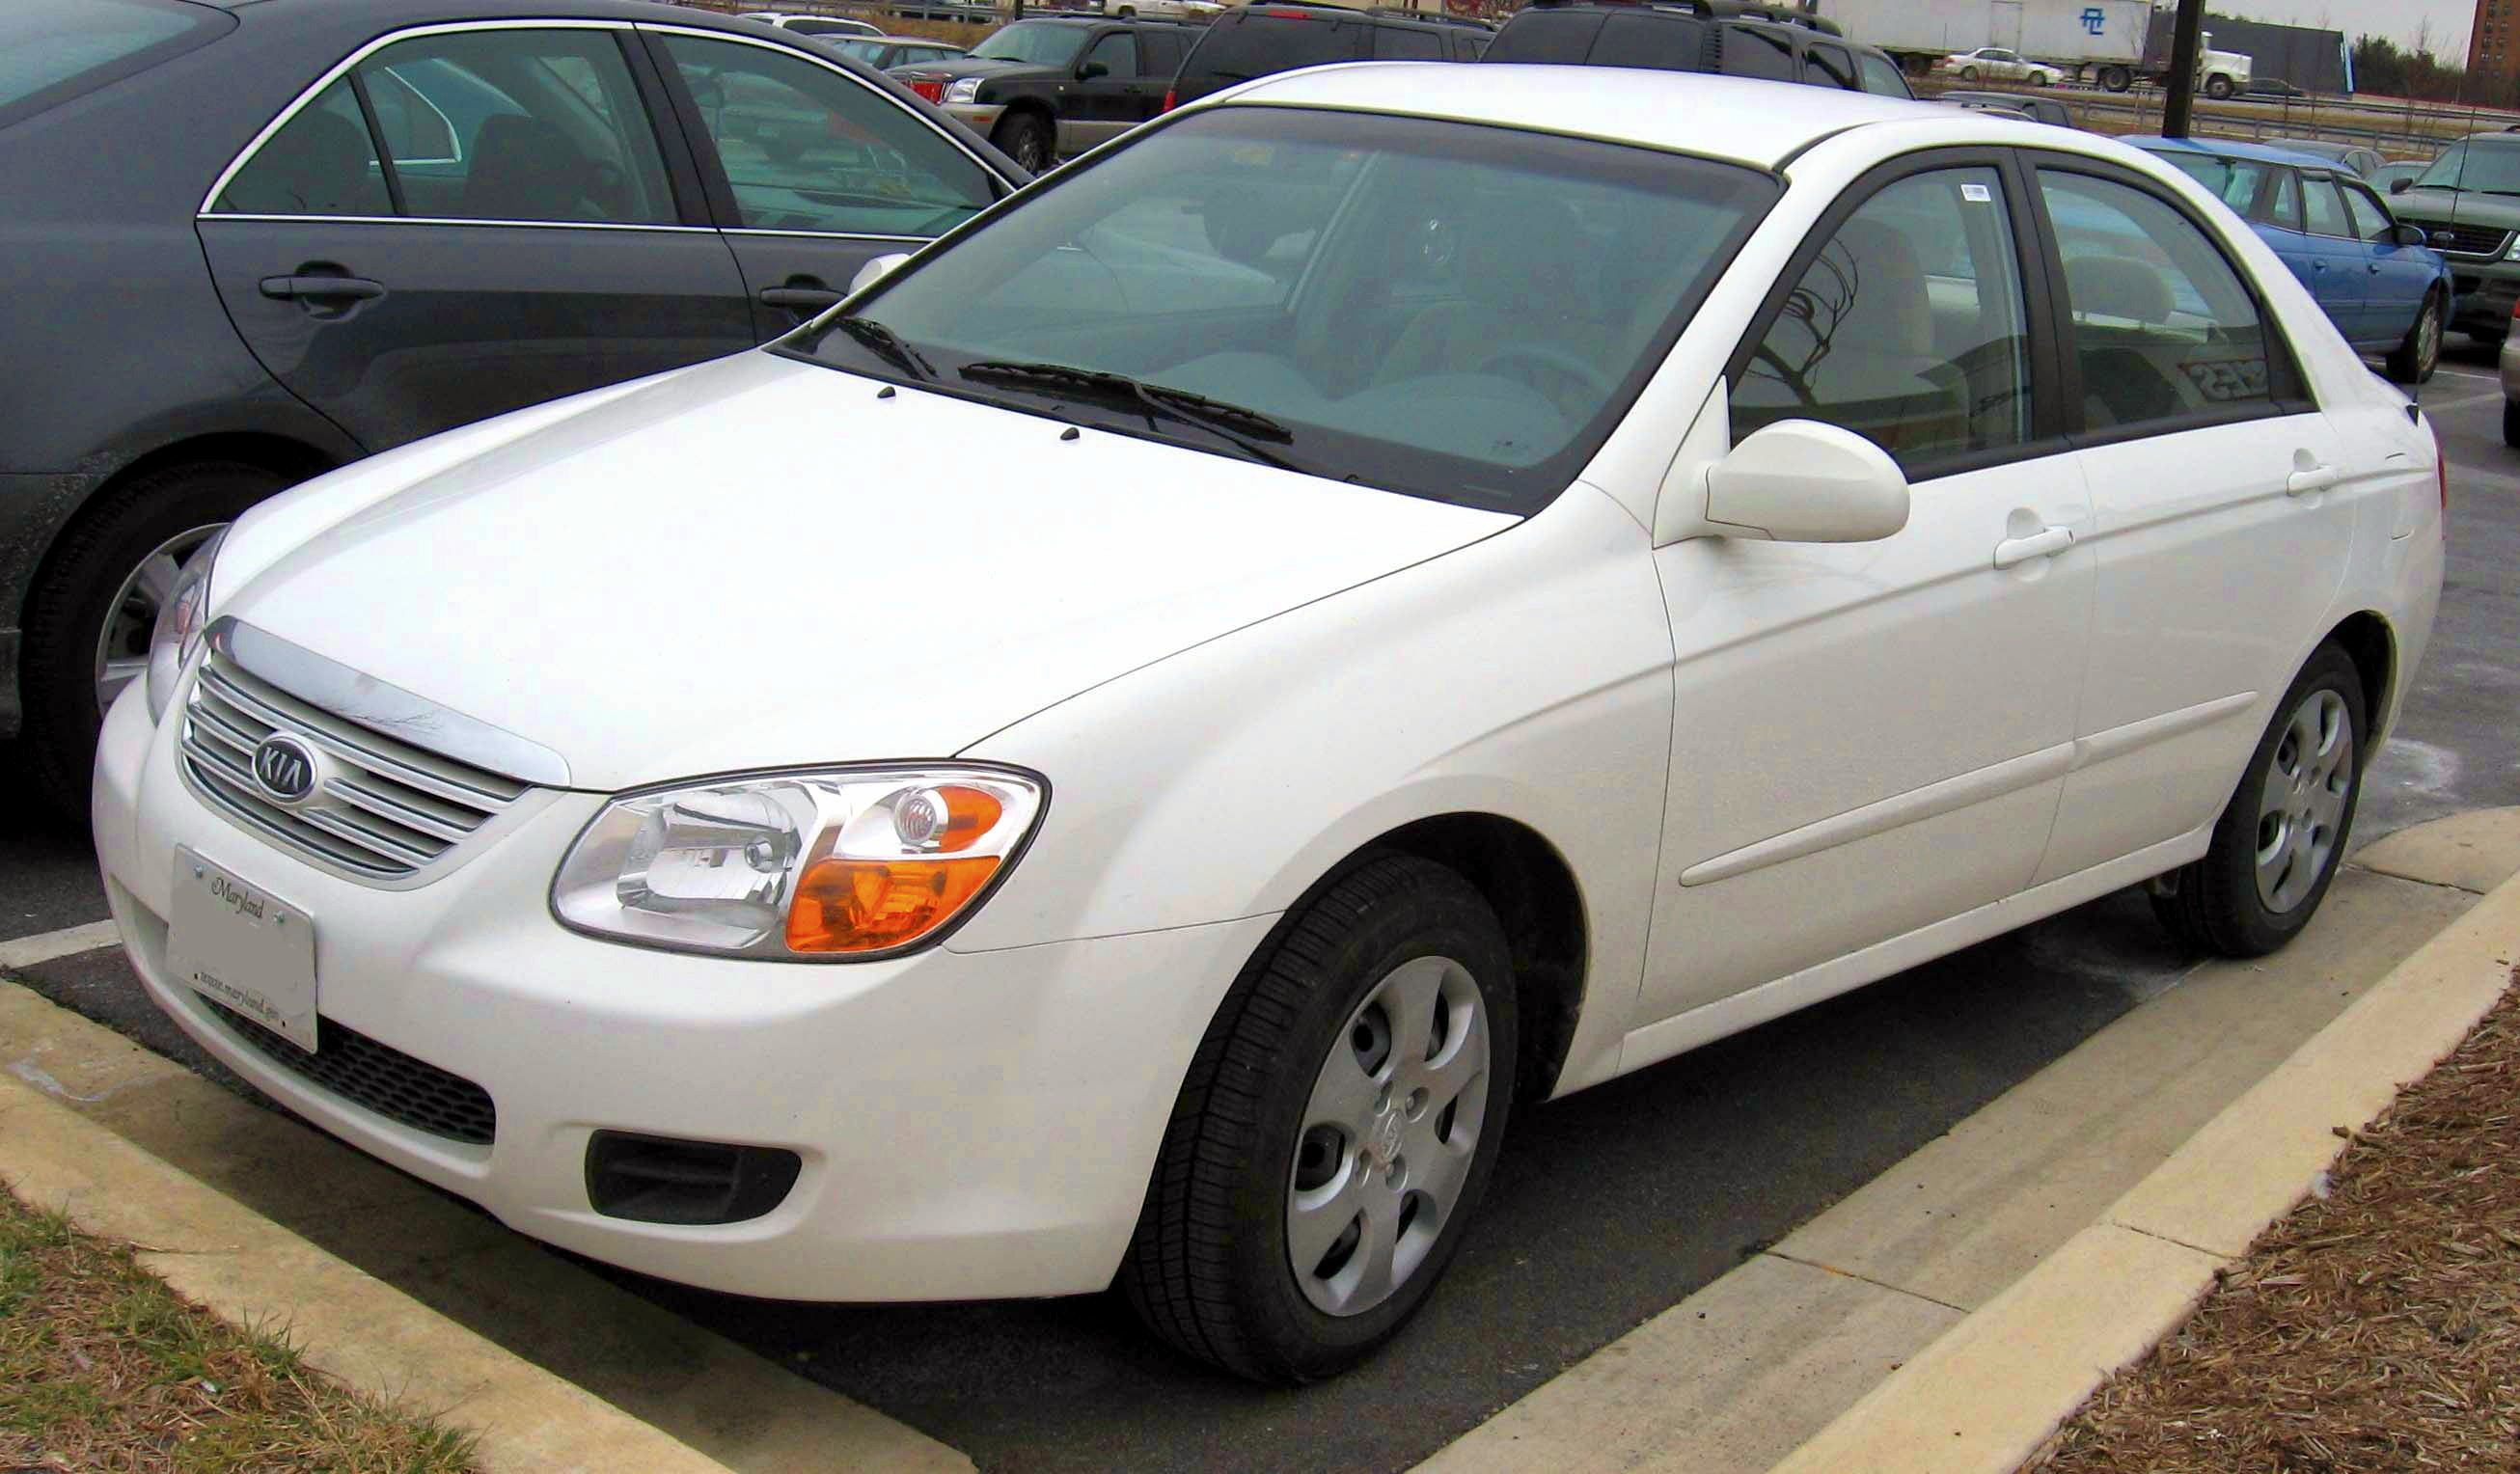 Kia Spectra5 2007 Review Amazing Pictures And Images